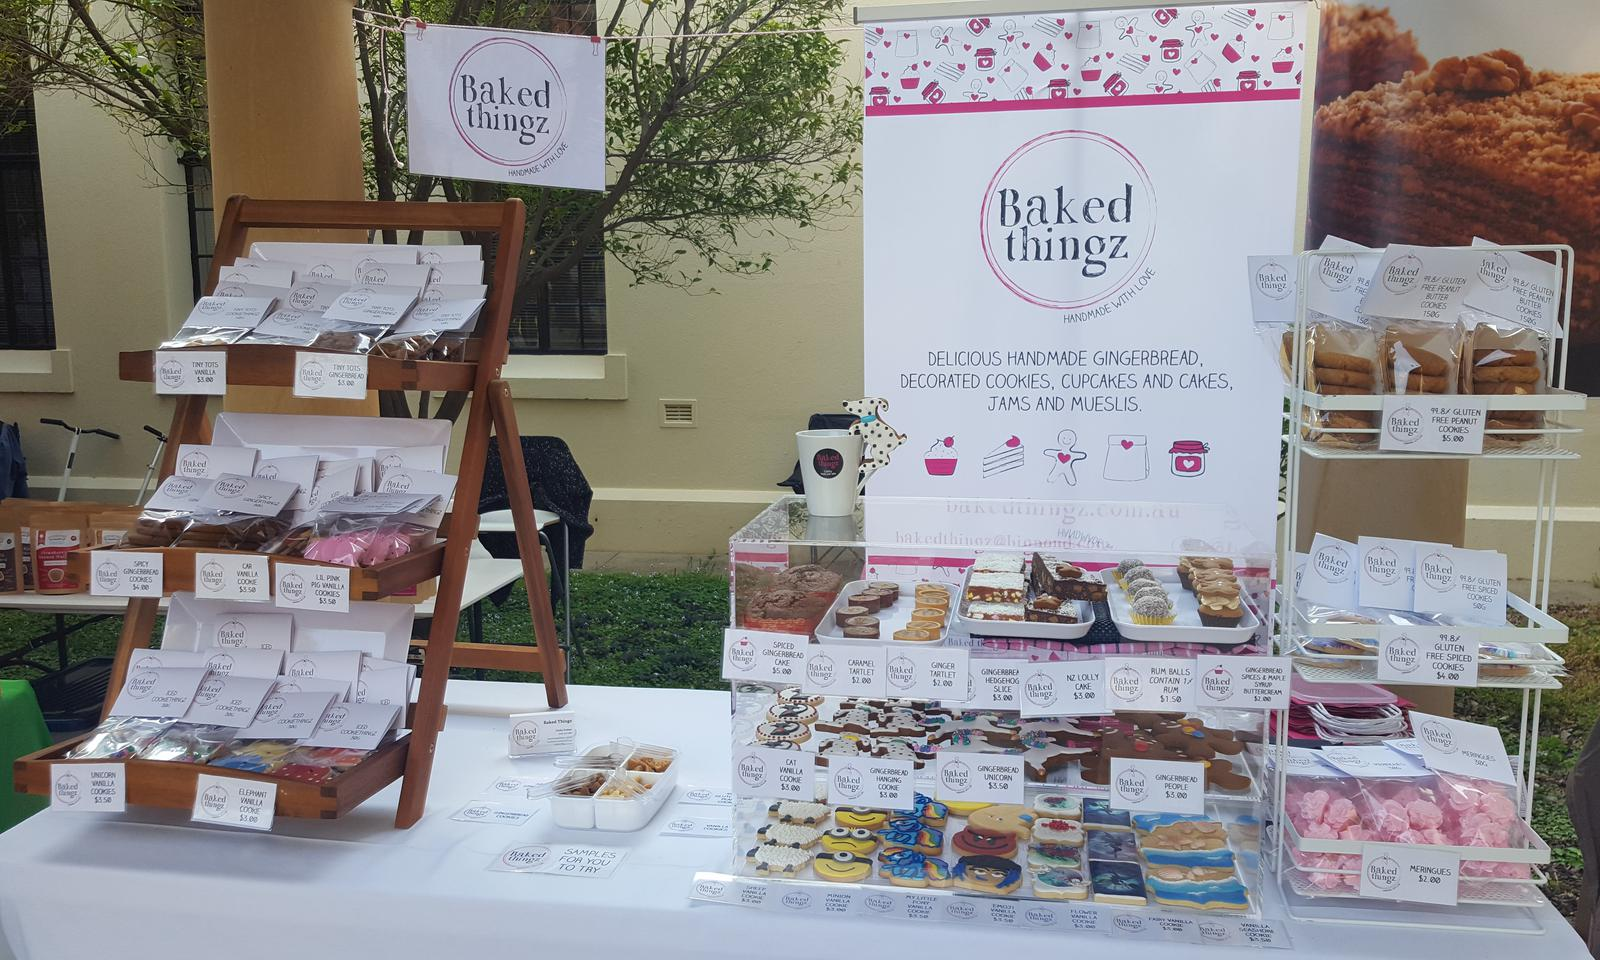 Baked Thingz stall